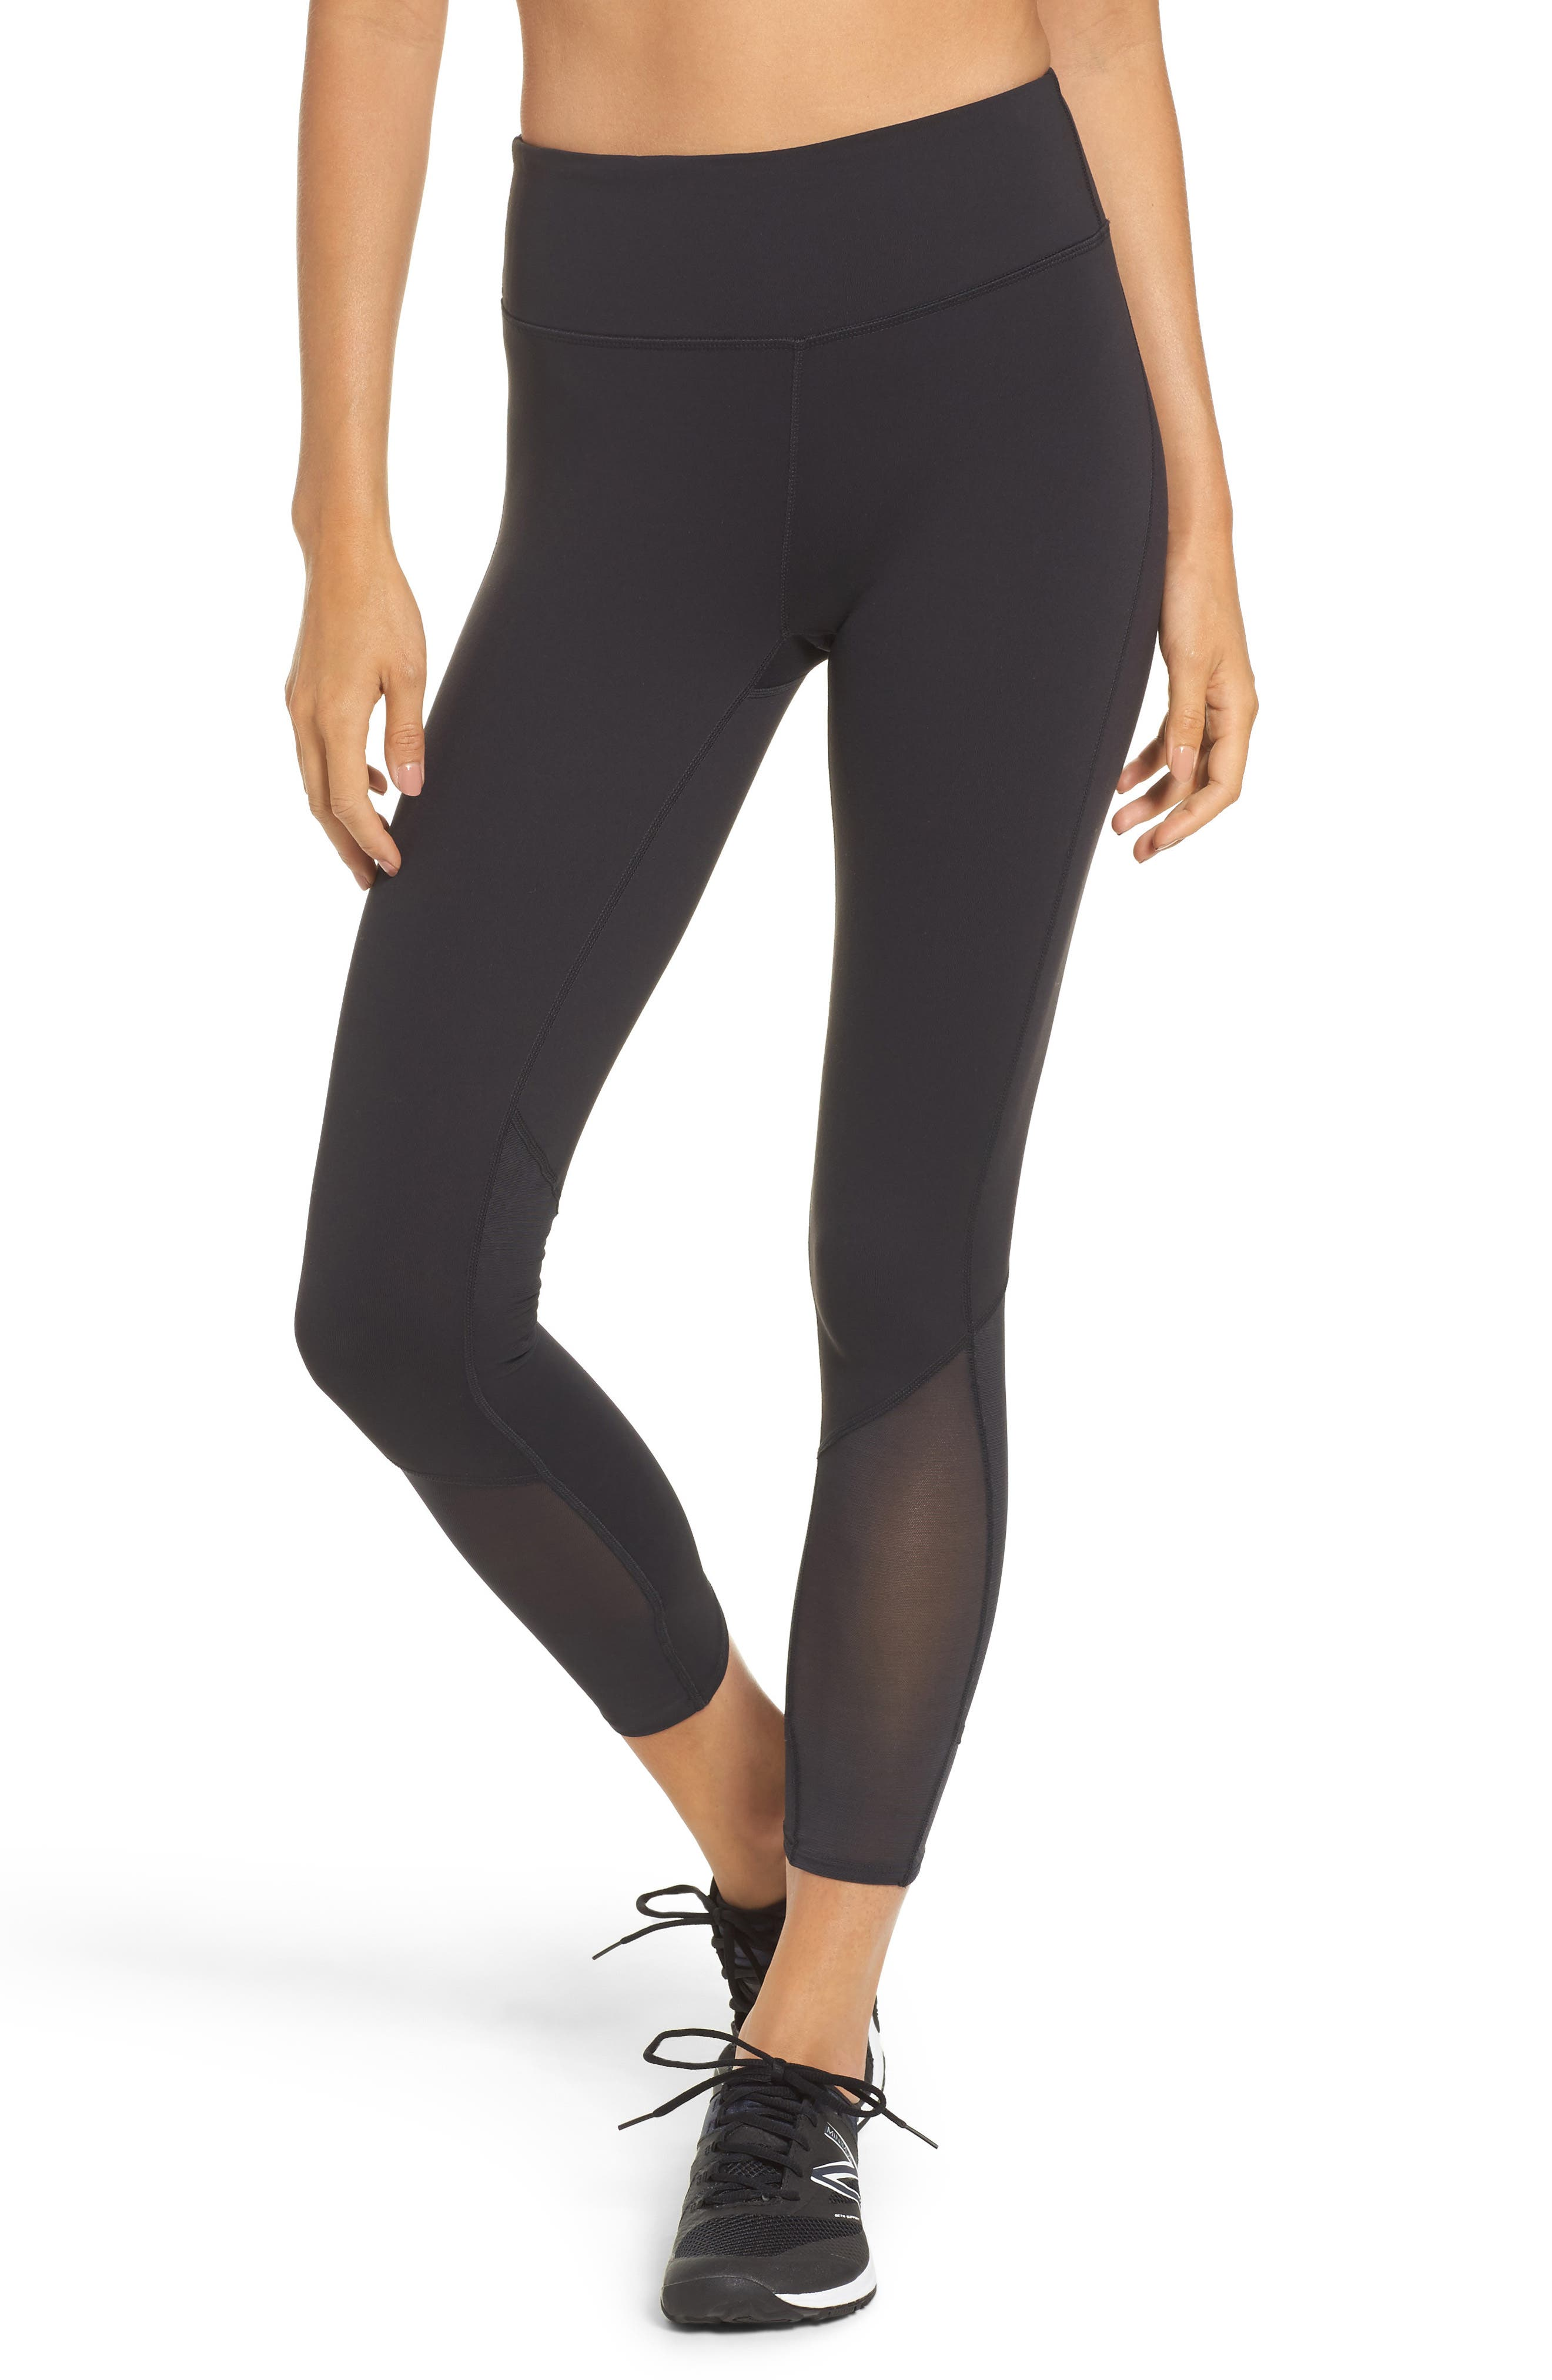 Elixir High Waist Ankle Leggings,                         Main,                         color,